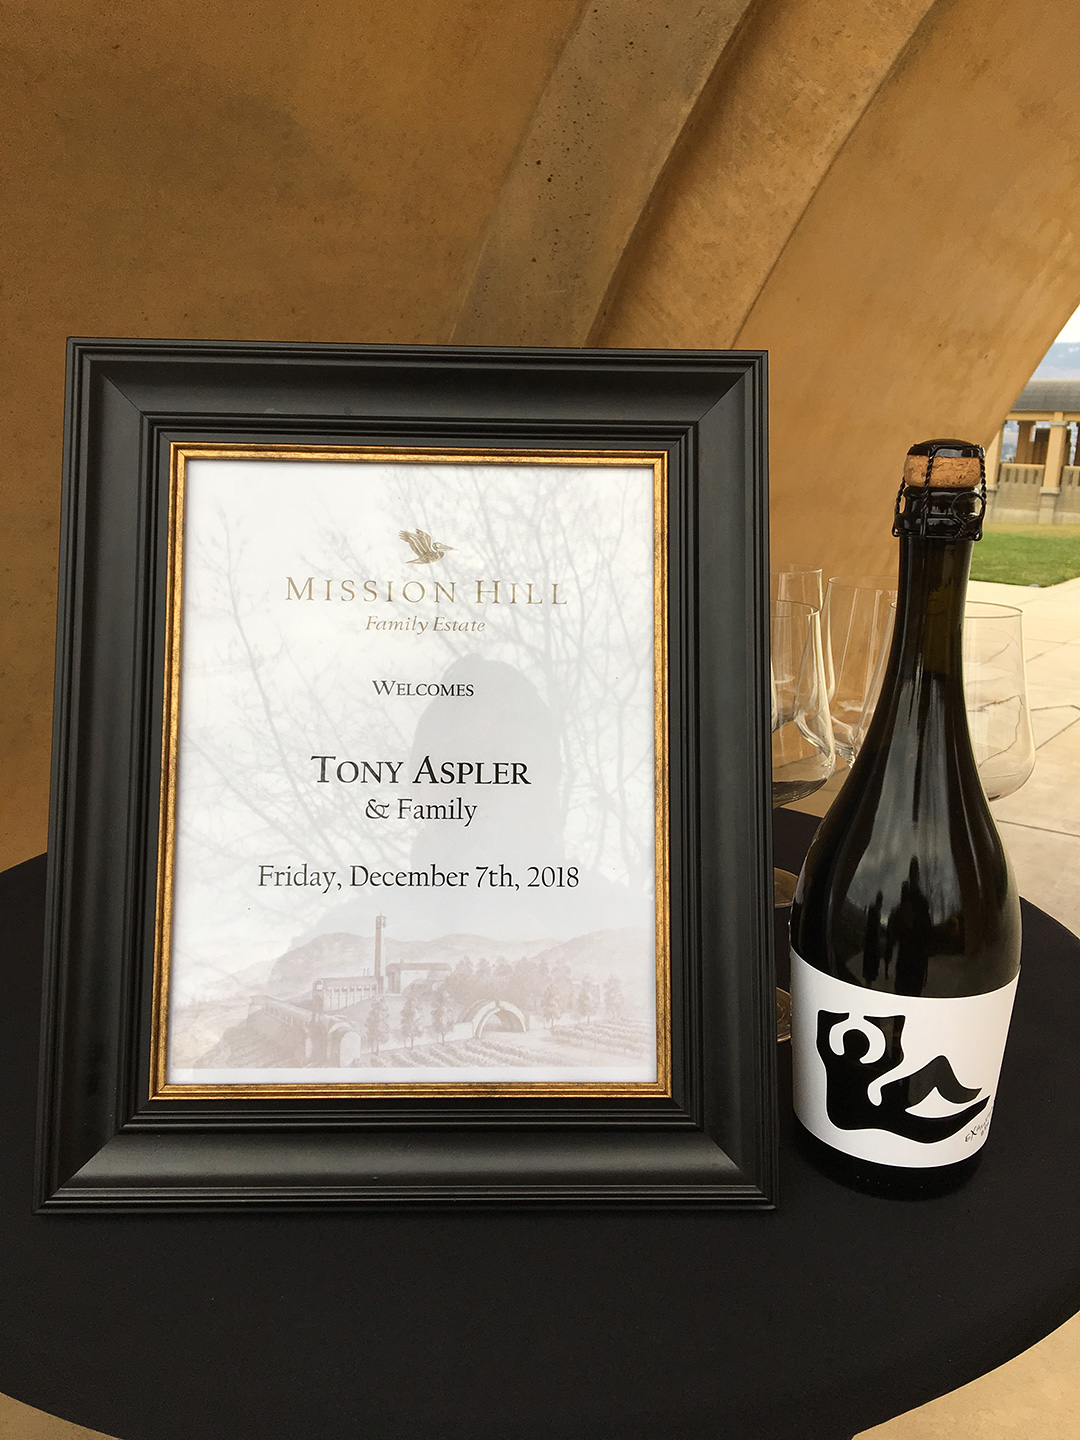 Framed paper on a table next to a bottle of wine: Mission Hill Family Estate welcomes Tony Aspler & Family, Friday, December 7th, 2018